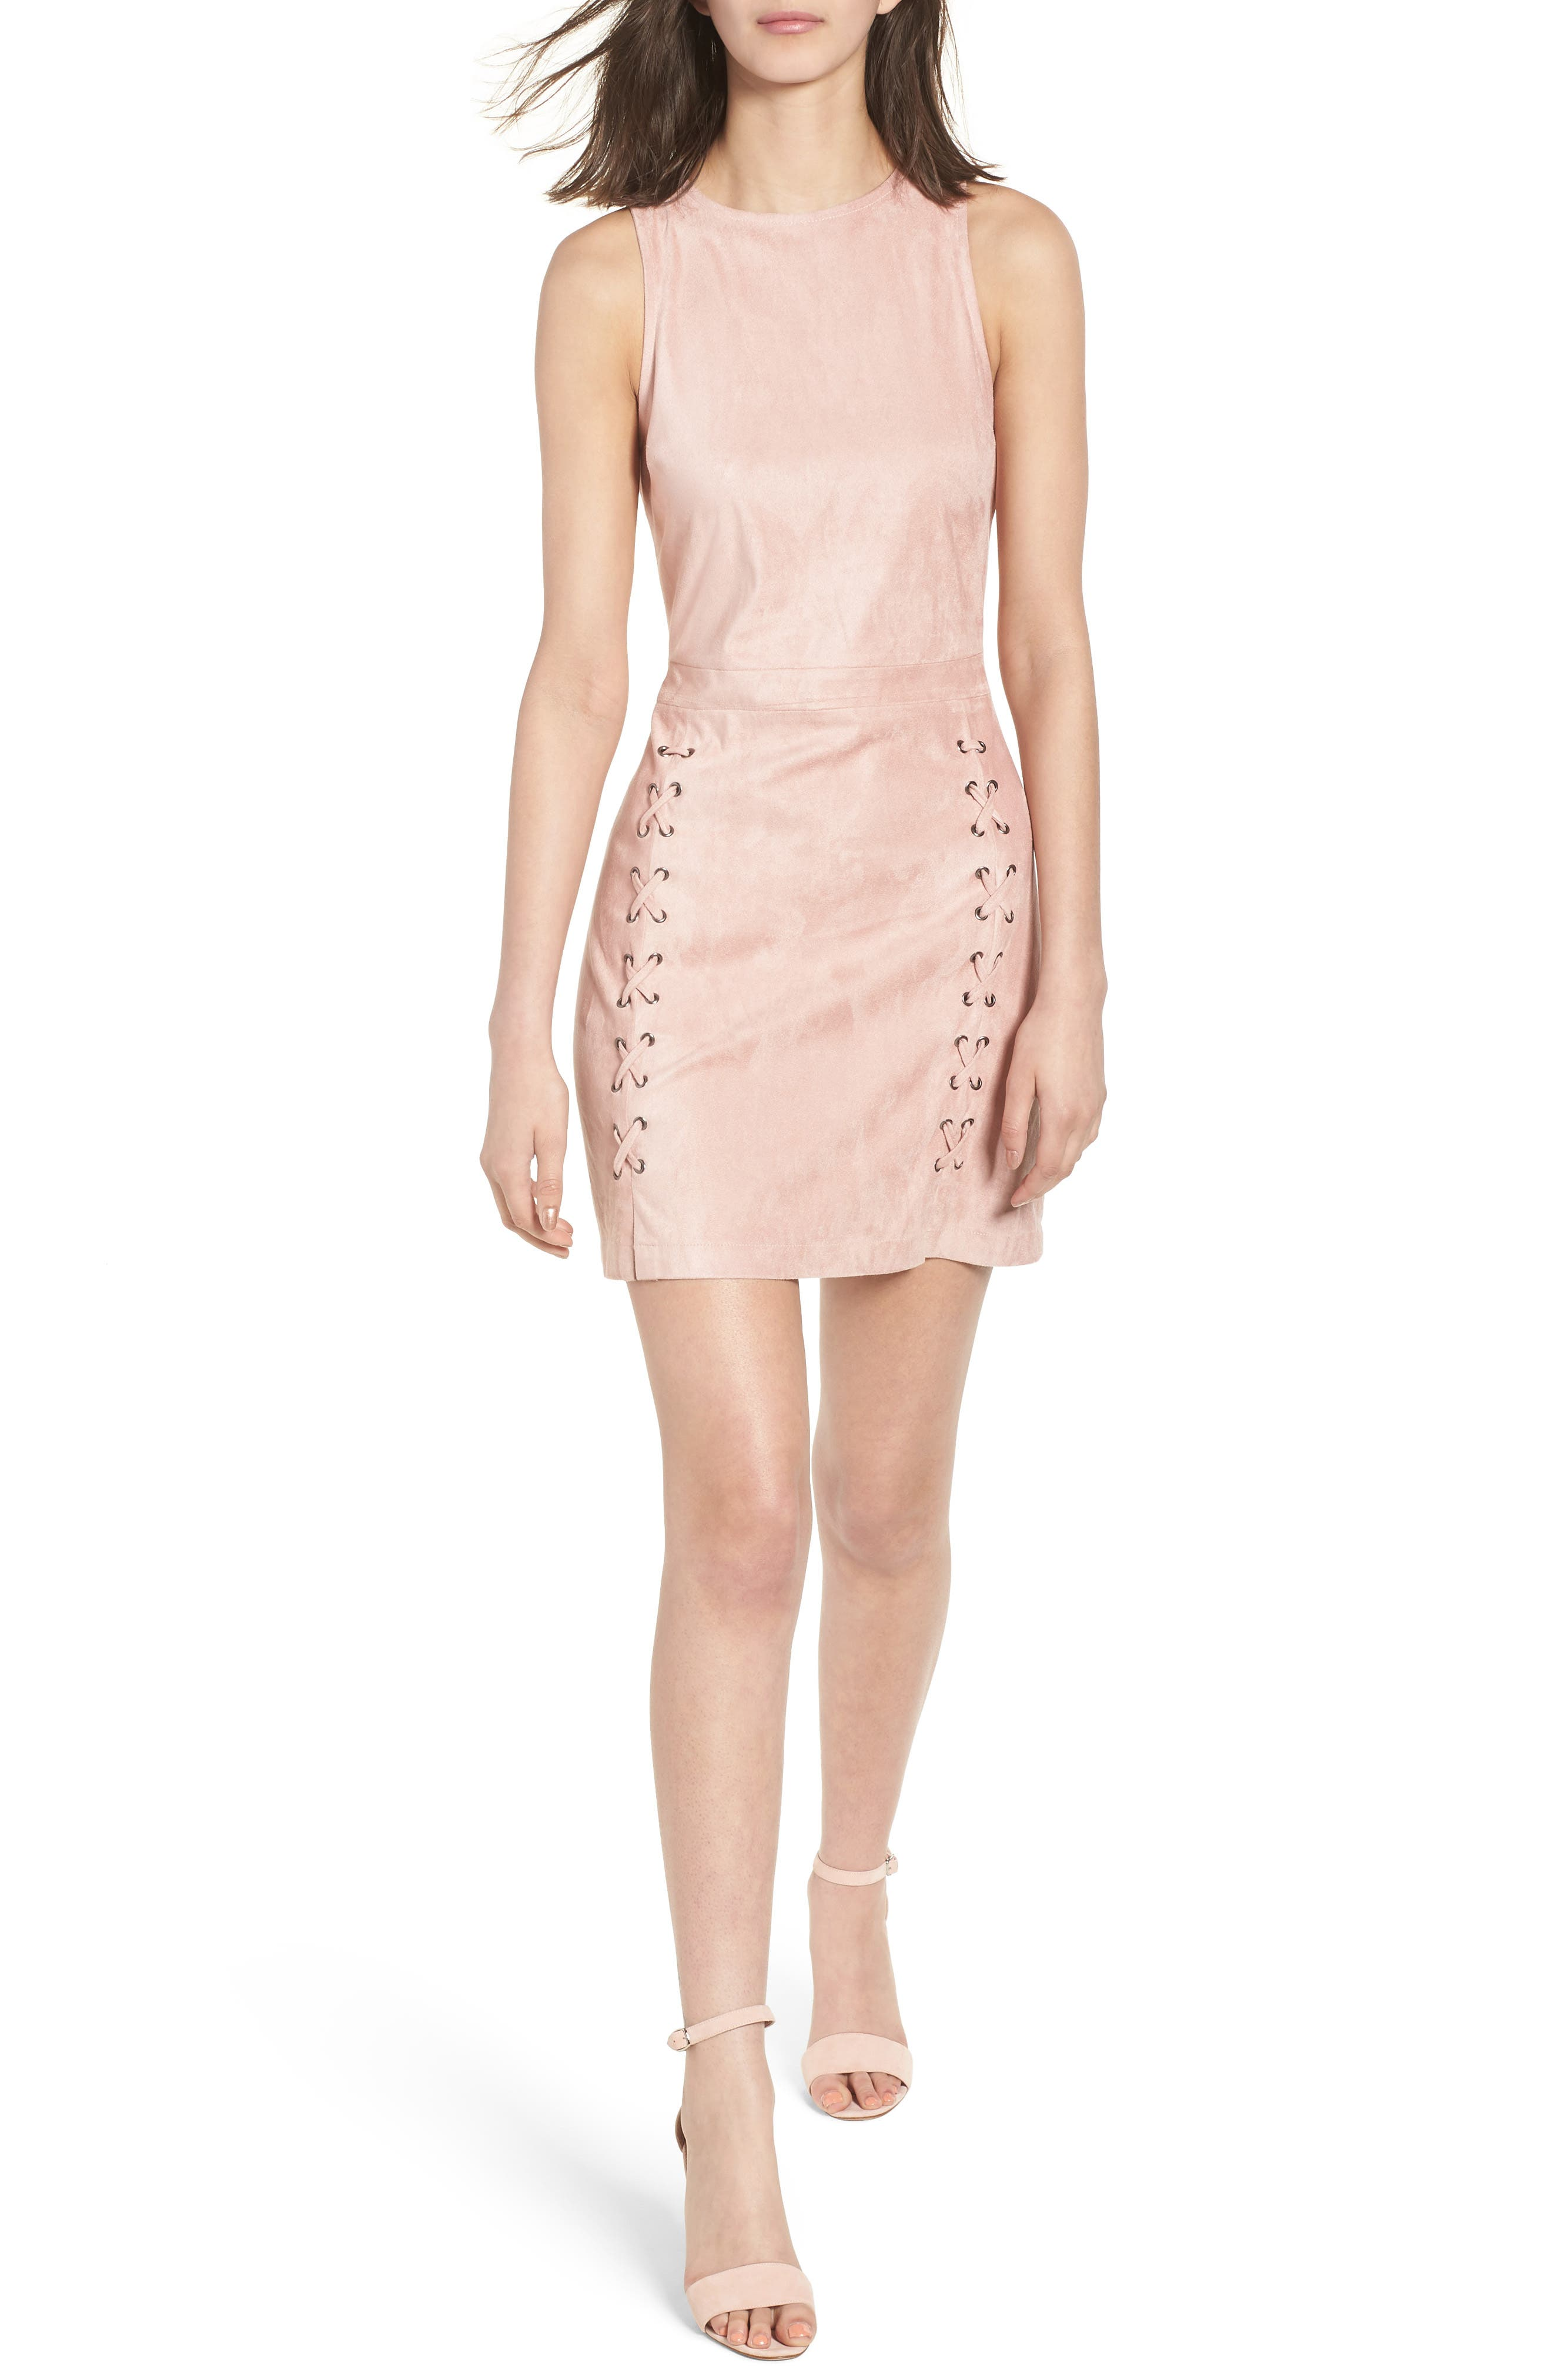 Daton Faux Suede Dress,                         Main,                         color, Nude Pink